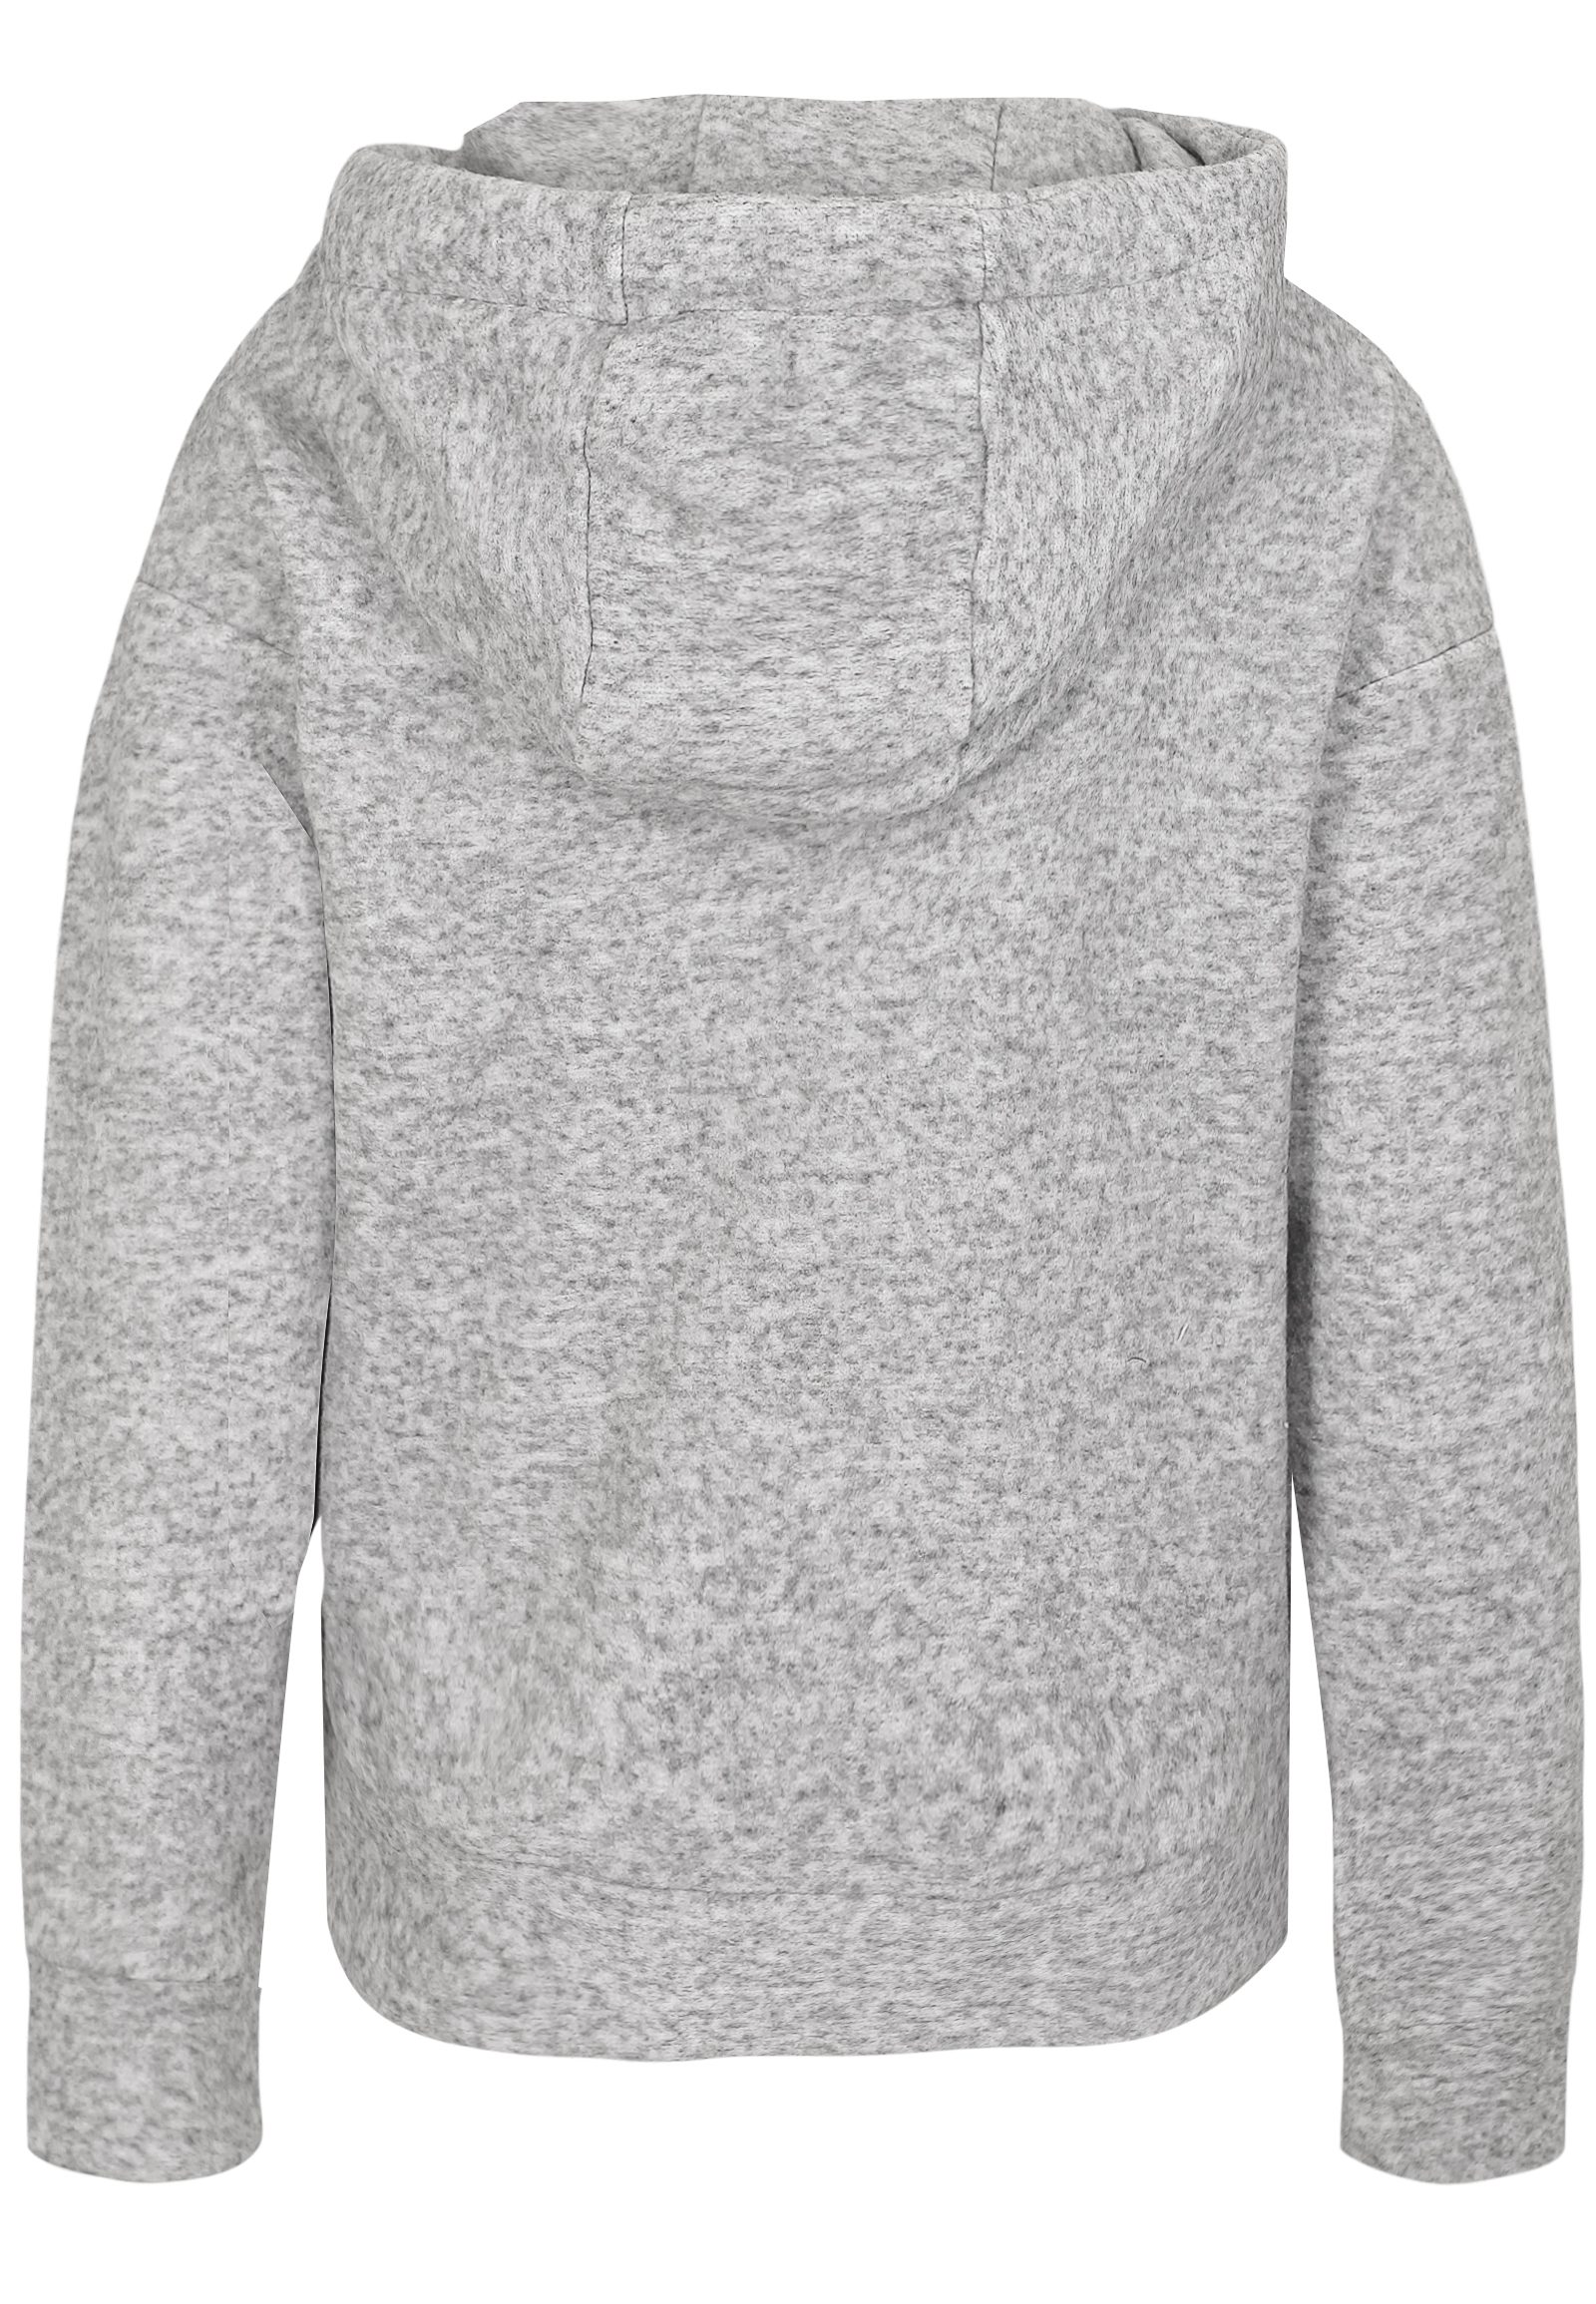 Vorschau: Hoodie in Fleece-Optik